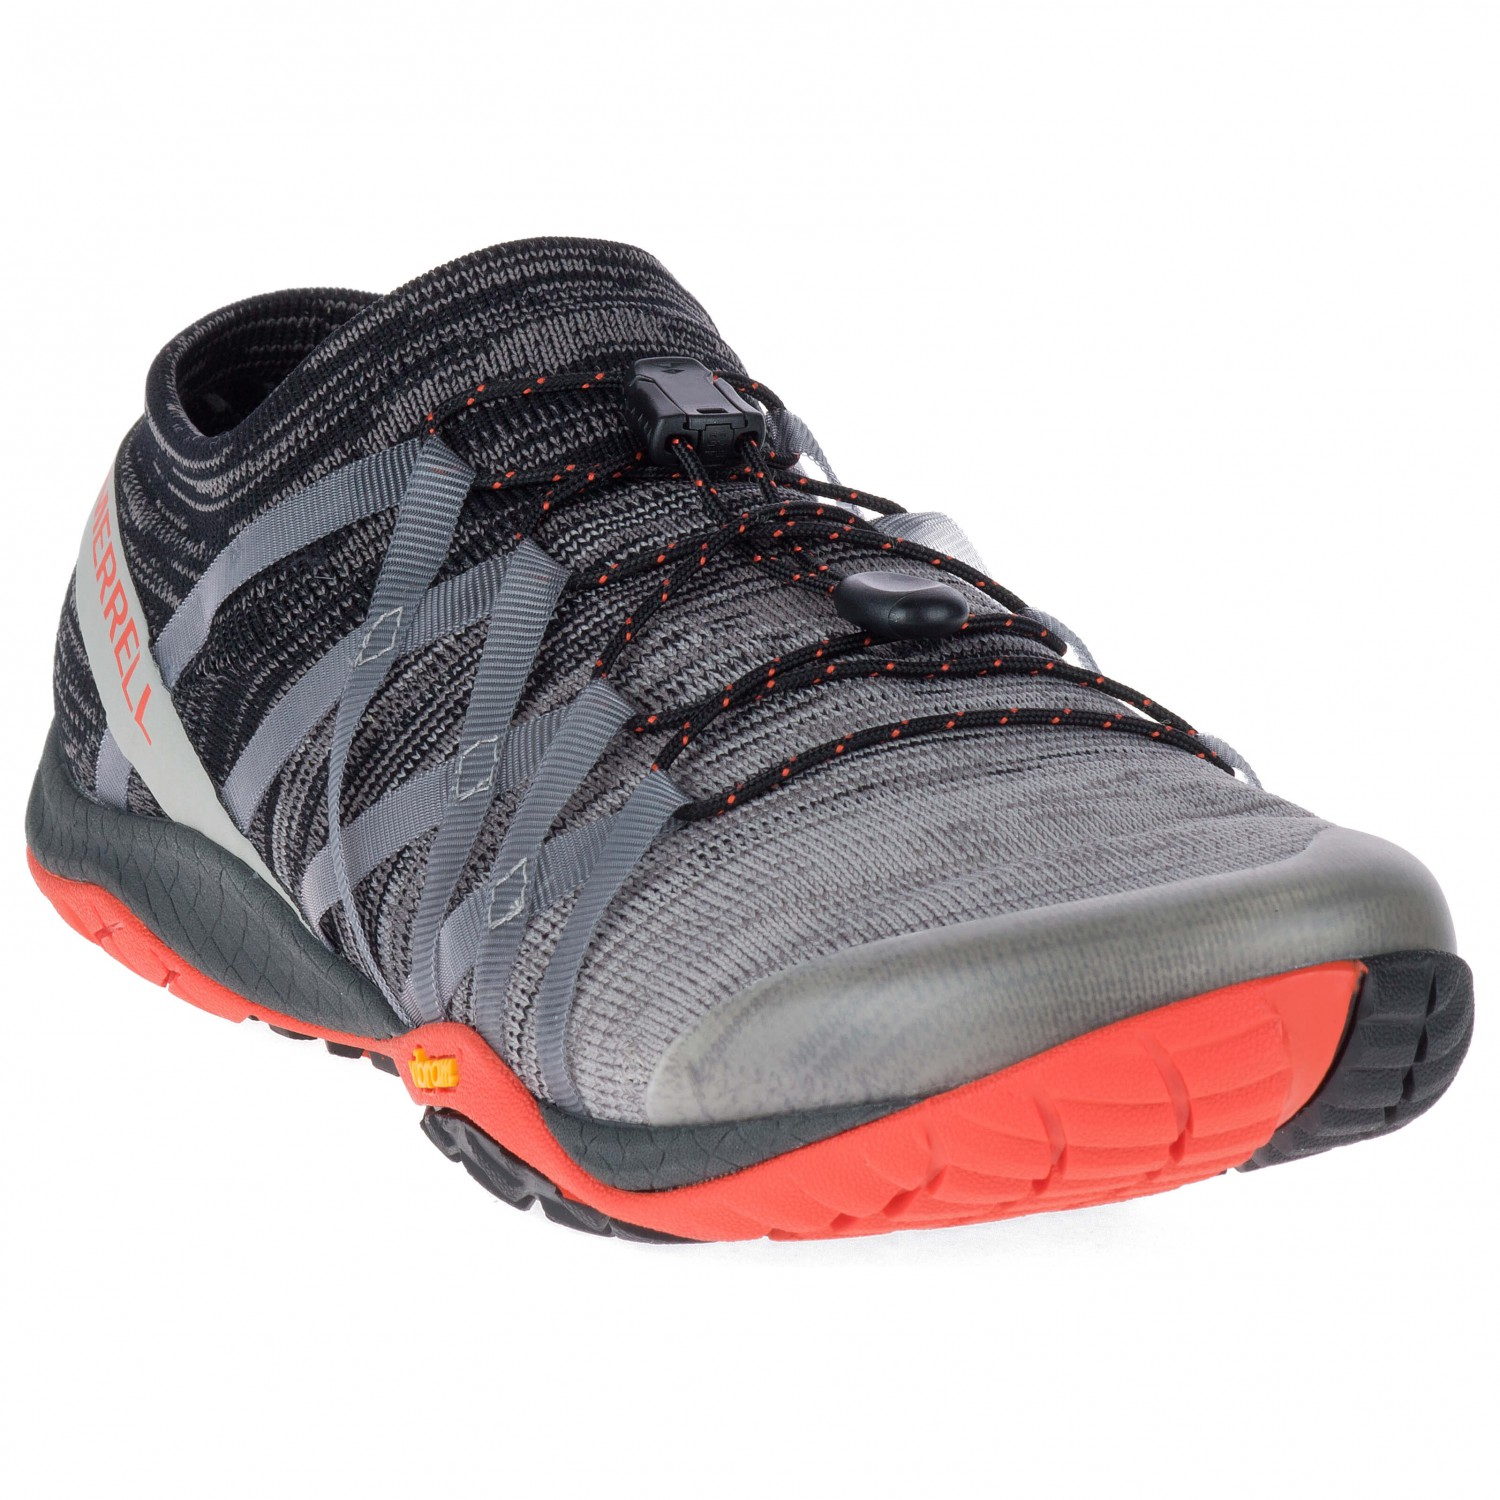 84369c46581 Merrell Trail Glove 4 Knit - Trail running shoes Men's | Free EU ...